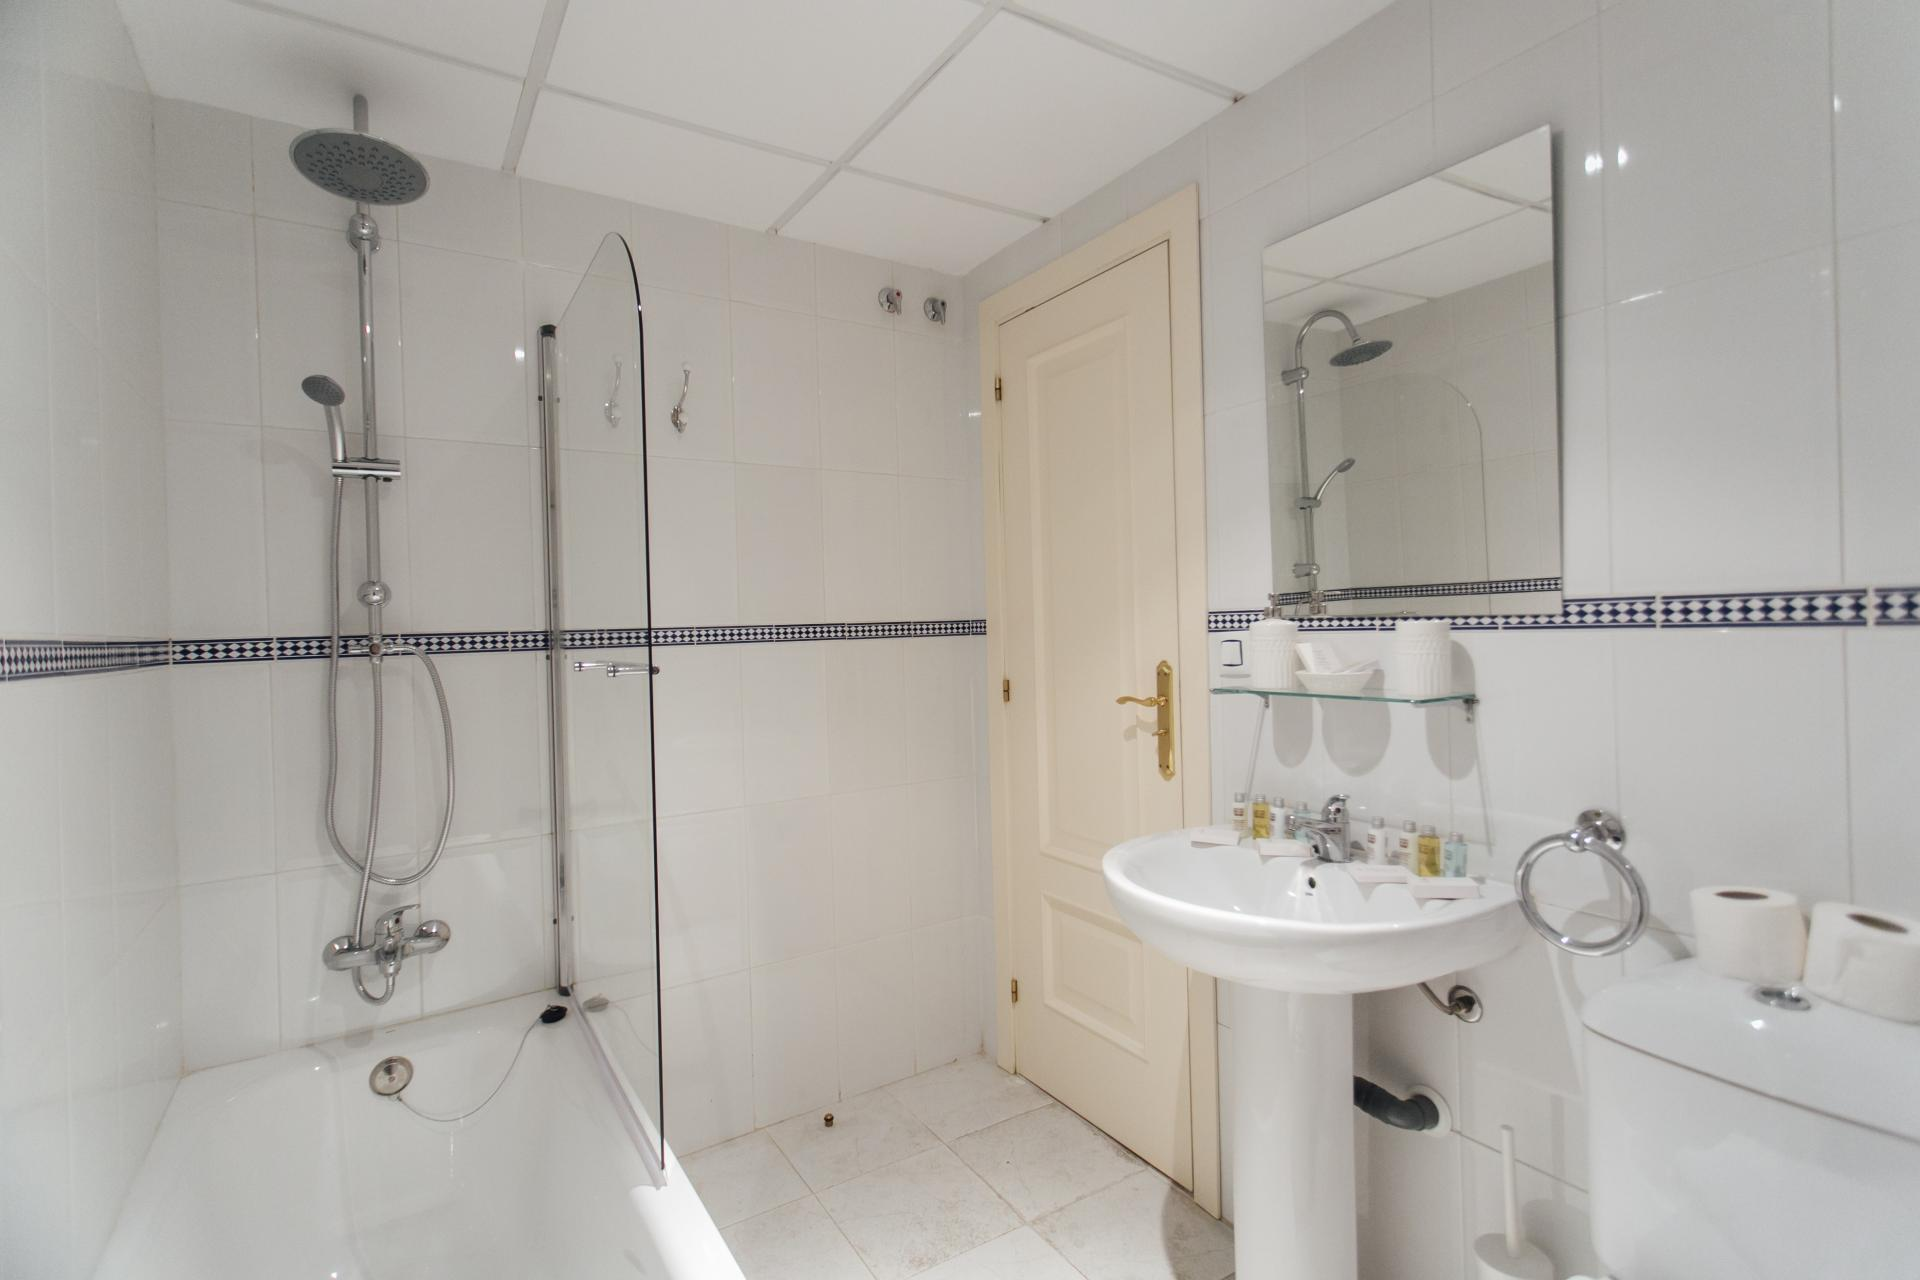 Shower at Constitucion Apartment, Centre, Seville